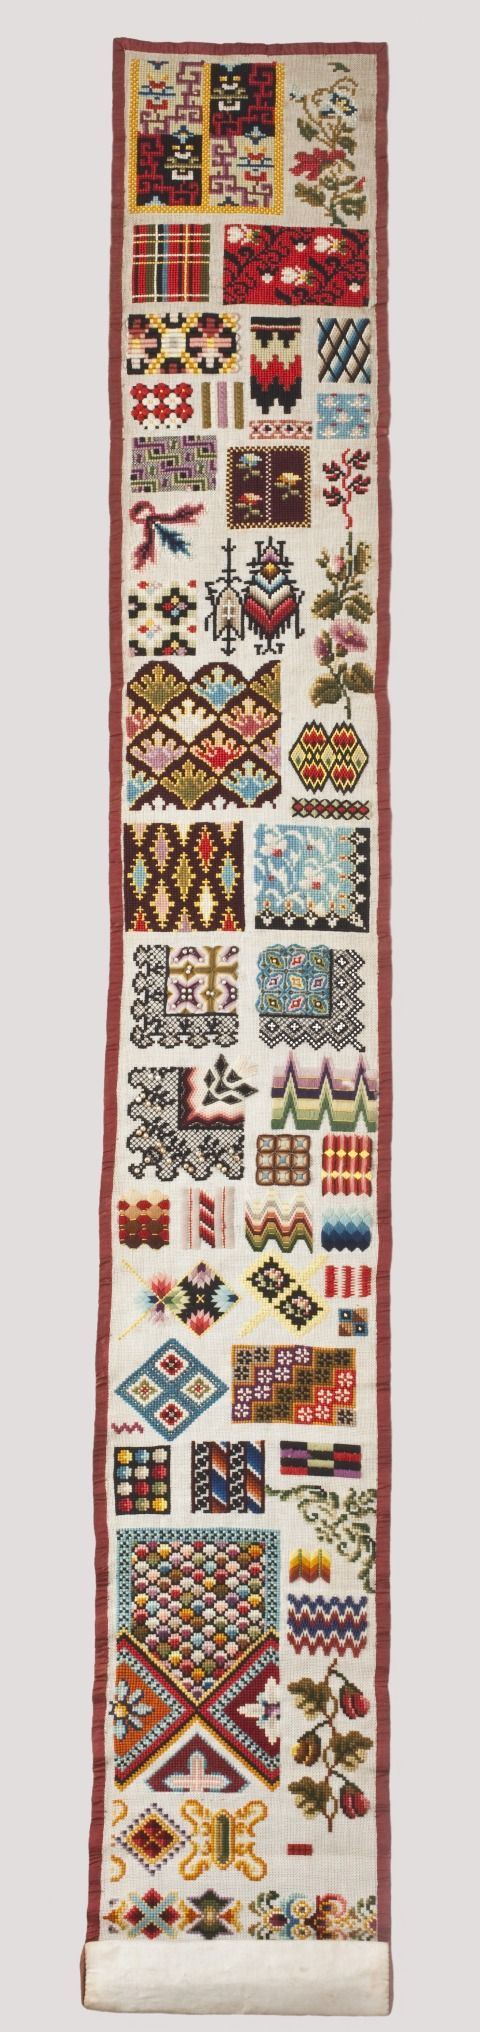 19th Century English WoolWork Sampler Dated 1860